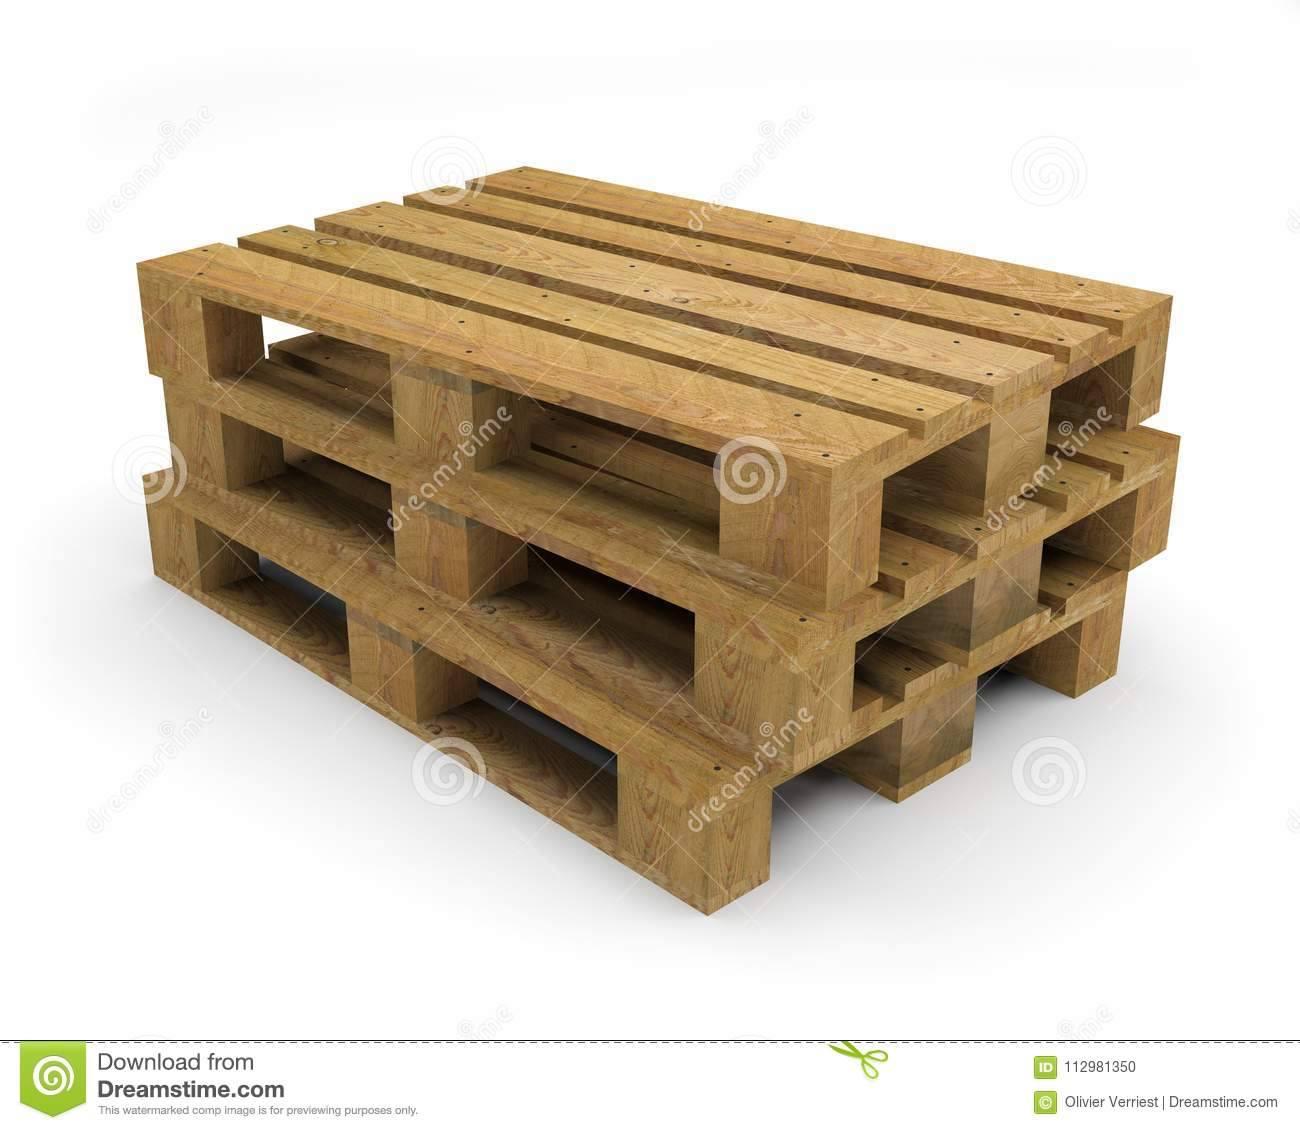 Pallet wood transport 3D illustration